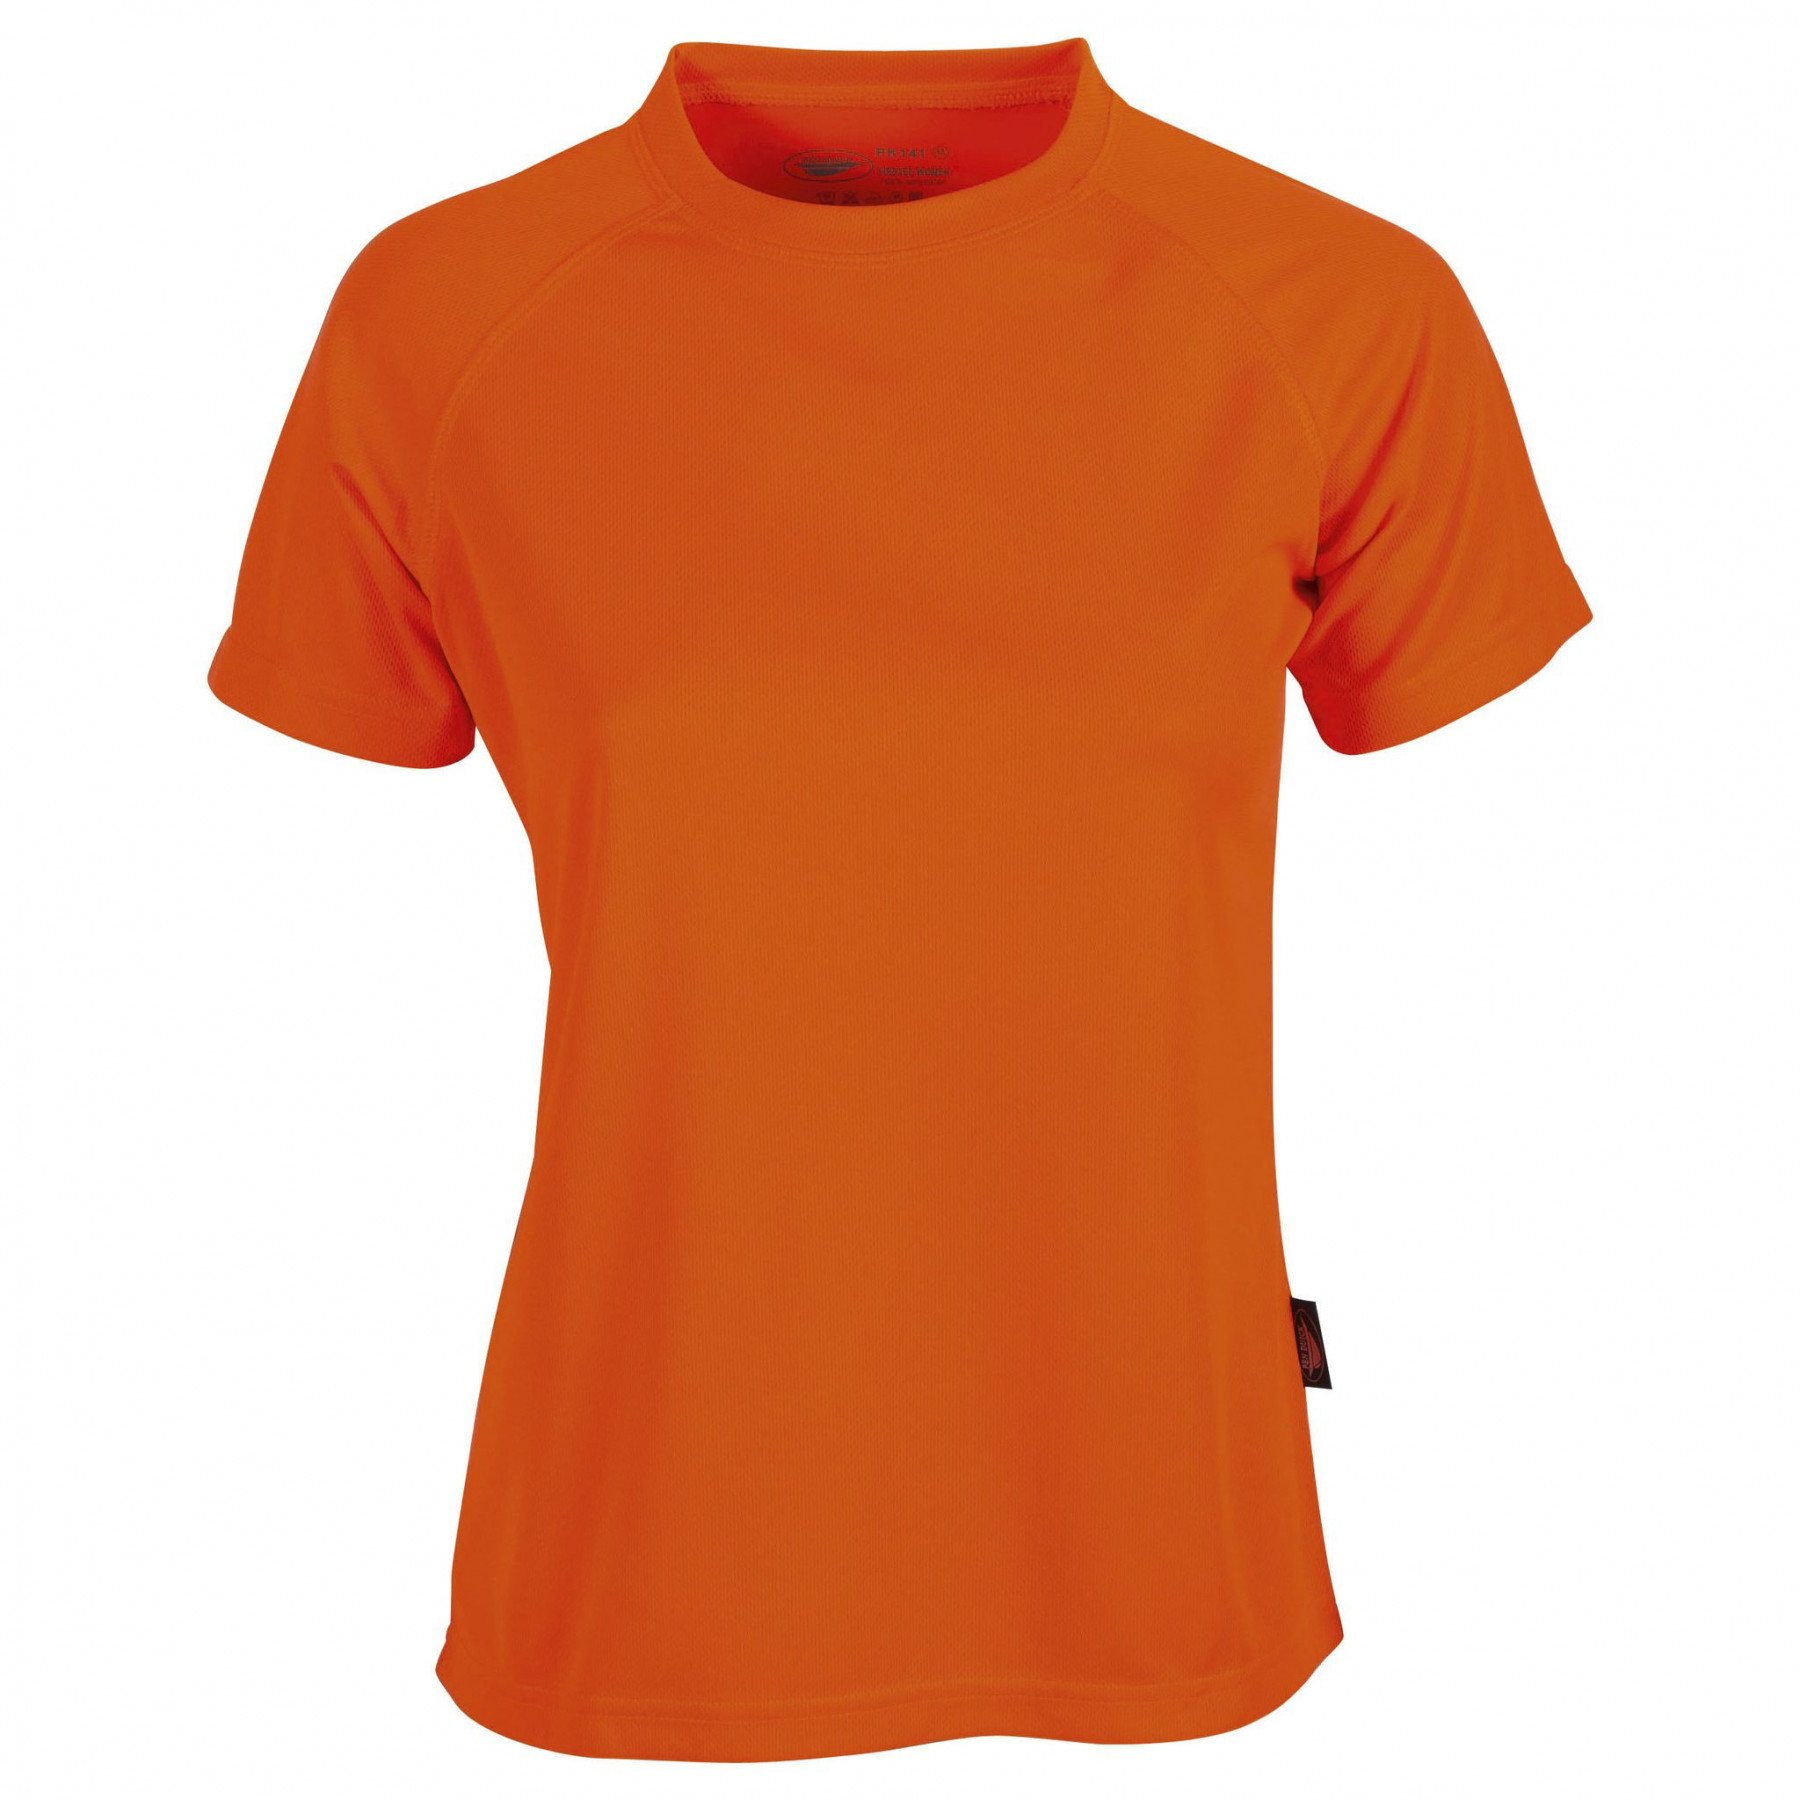 Tee-shirt respirant femme Pen Duick - Orange